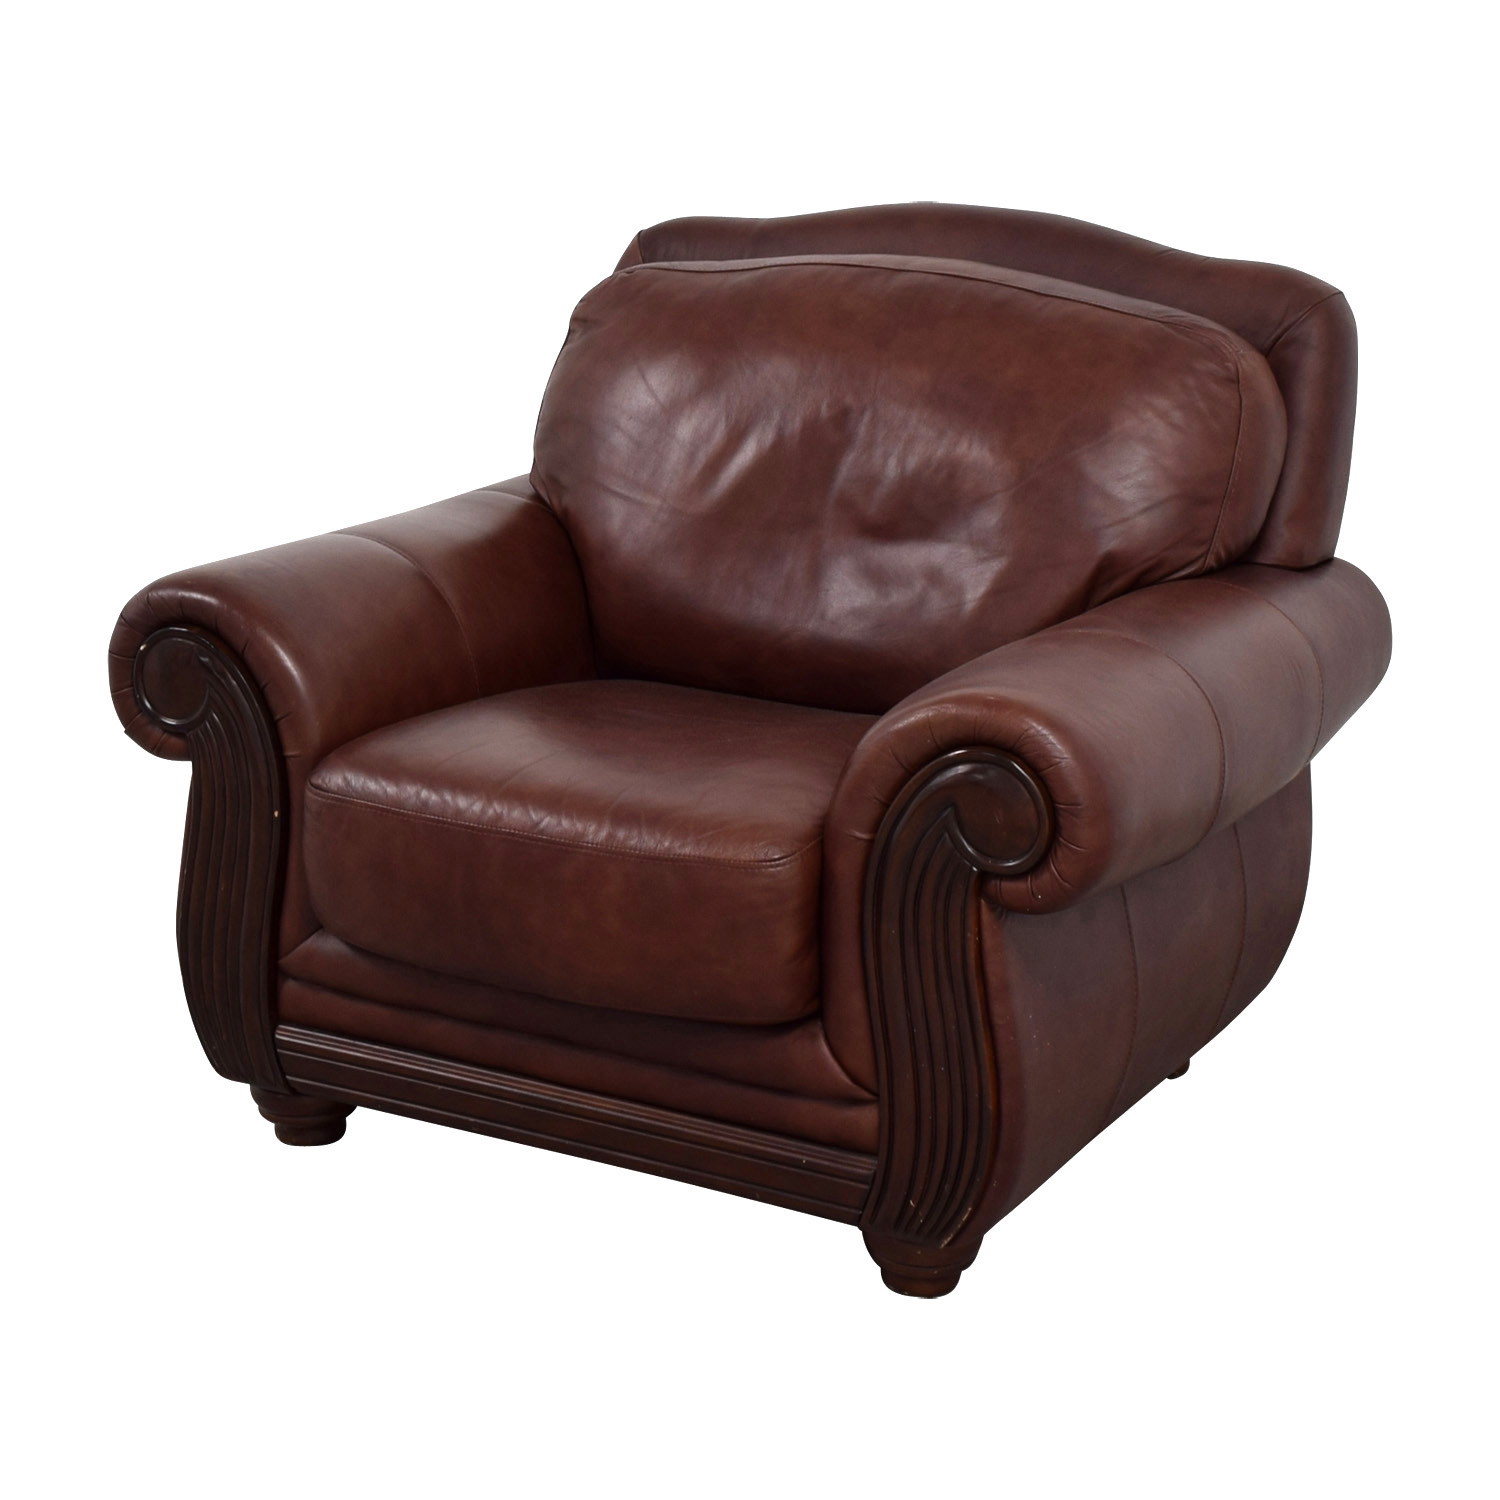 69 off rooms to go rooms to go brown leather accent chair chairs. Black Bedroom Furniture Sets. Home Design Ideas